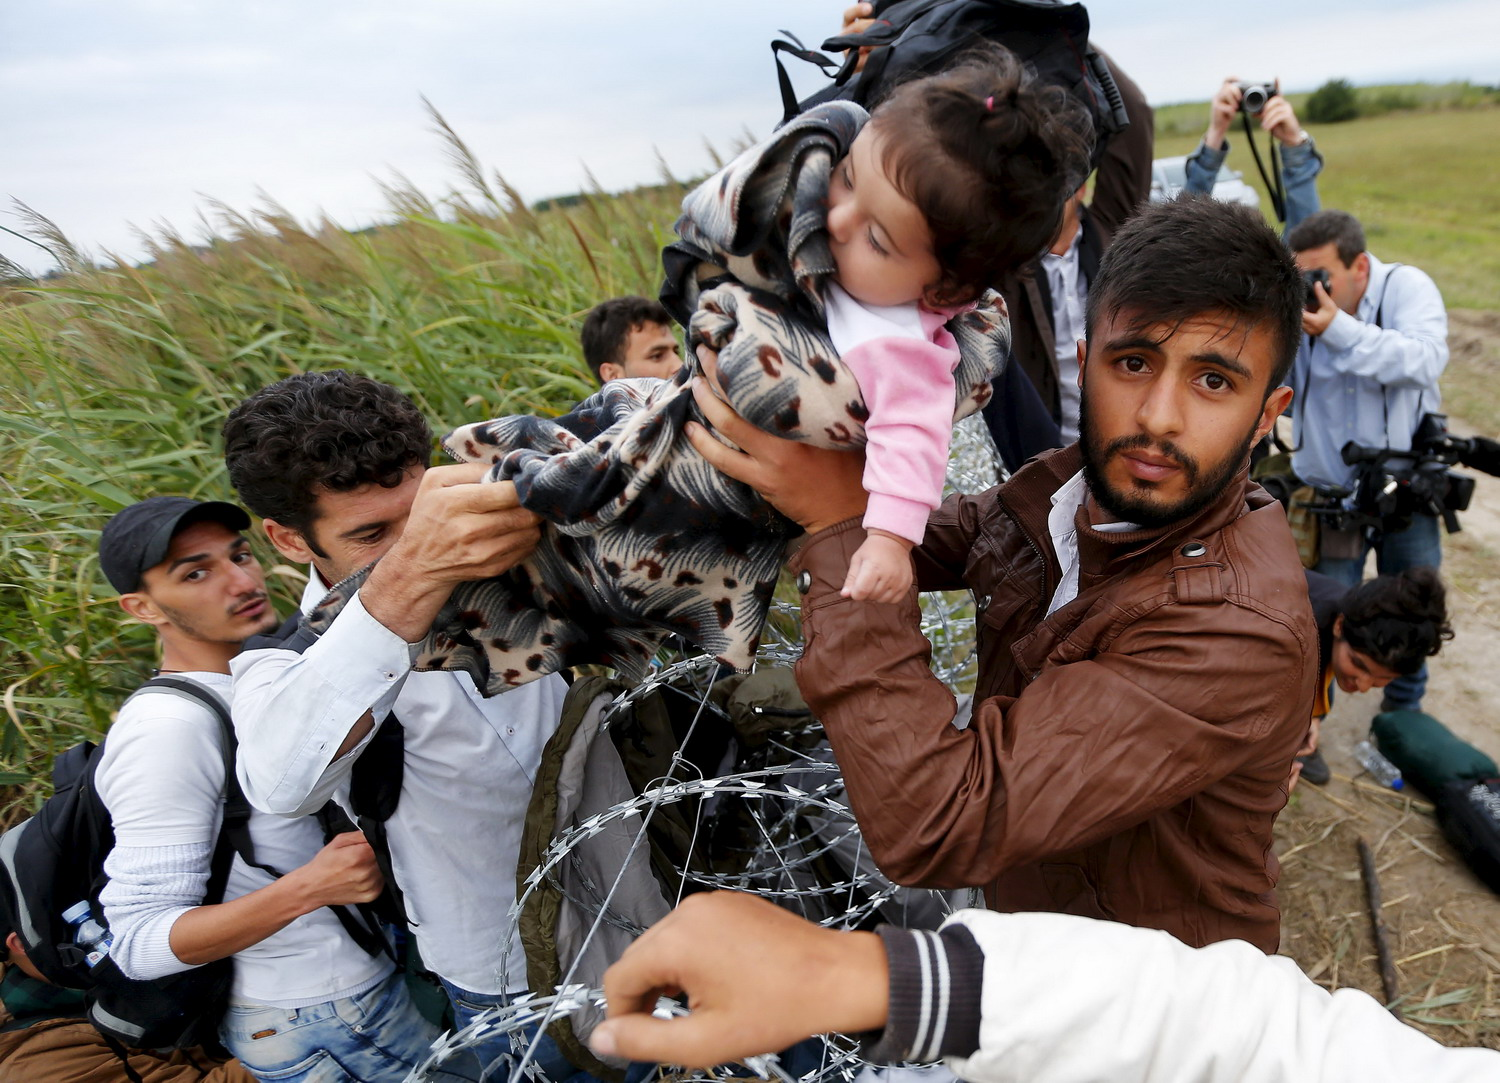 Hungary scrambles to confront record migrant influx